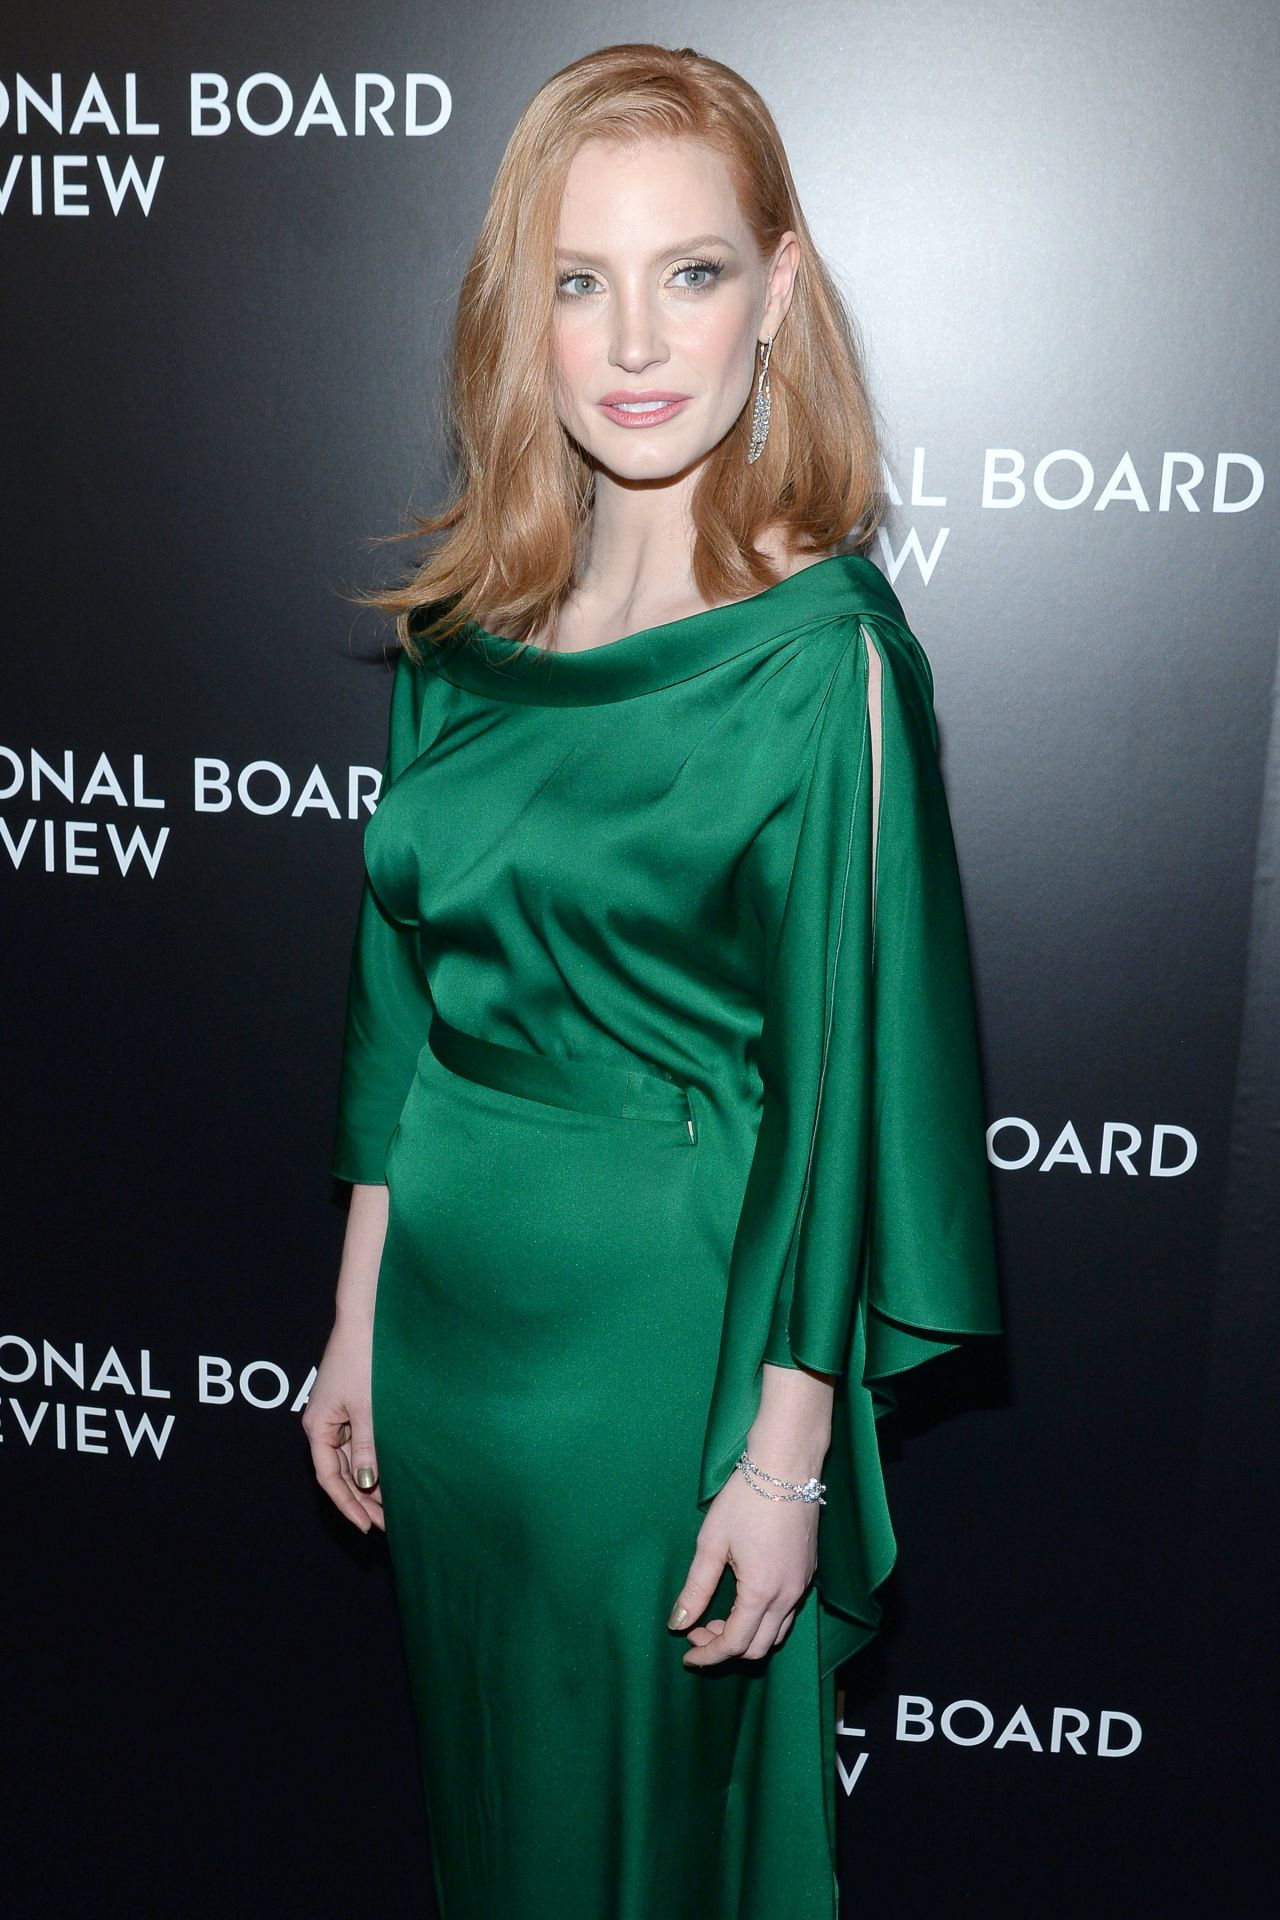 jessica-chastain-2015-national-board-of-review-gala-in-new-york-city-13